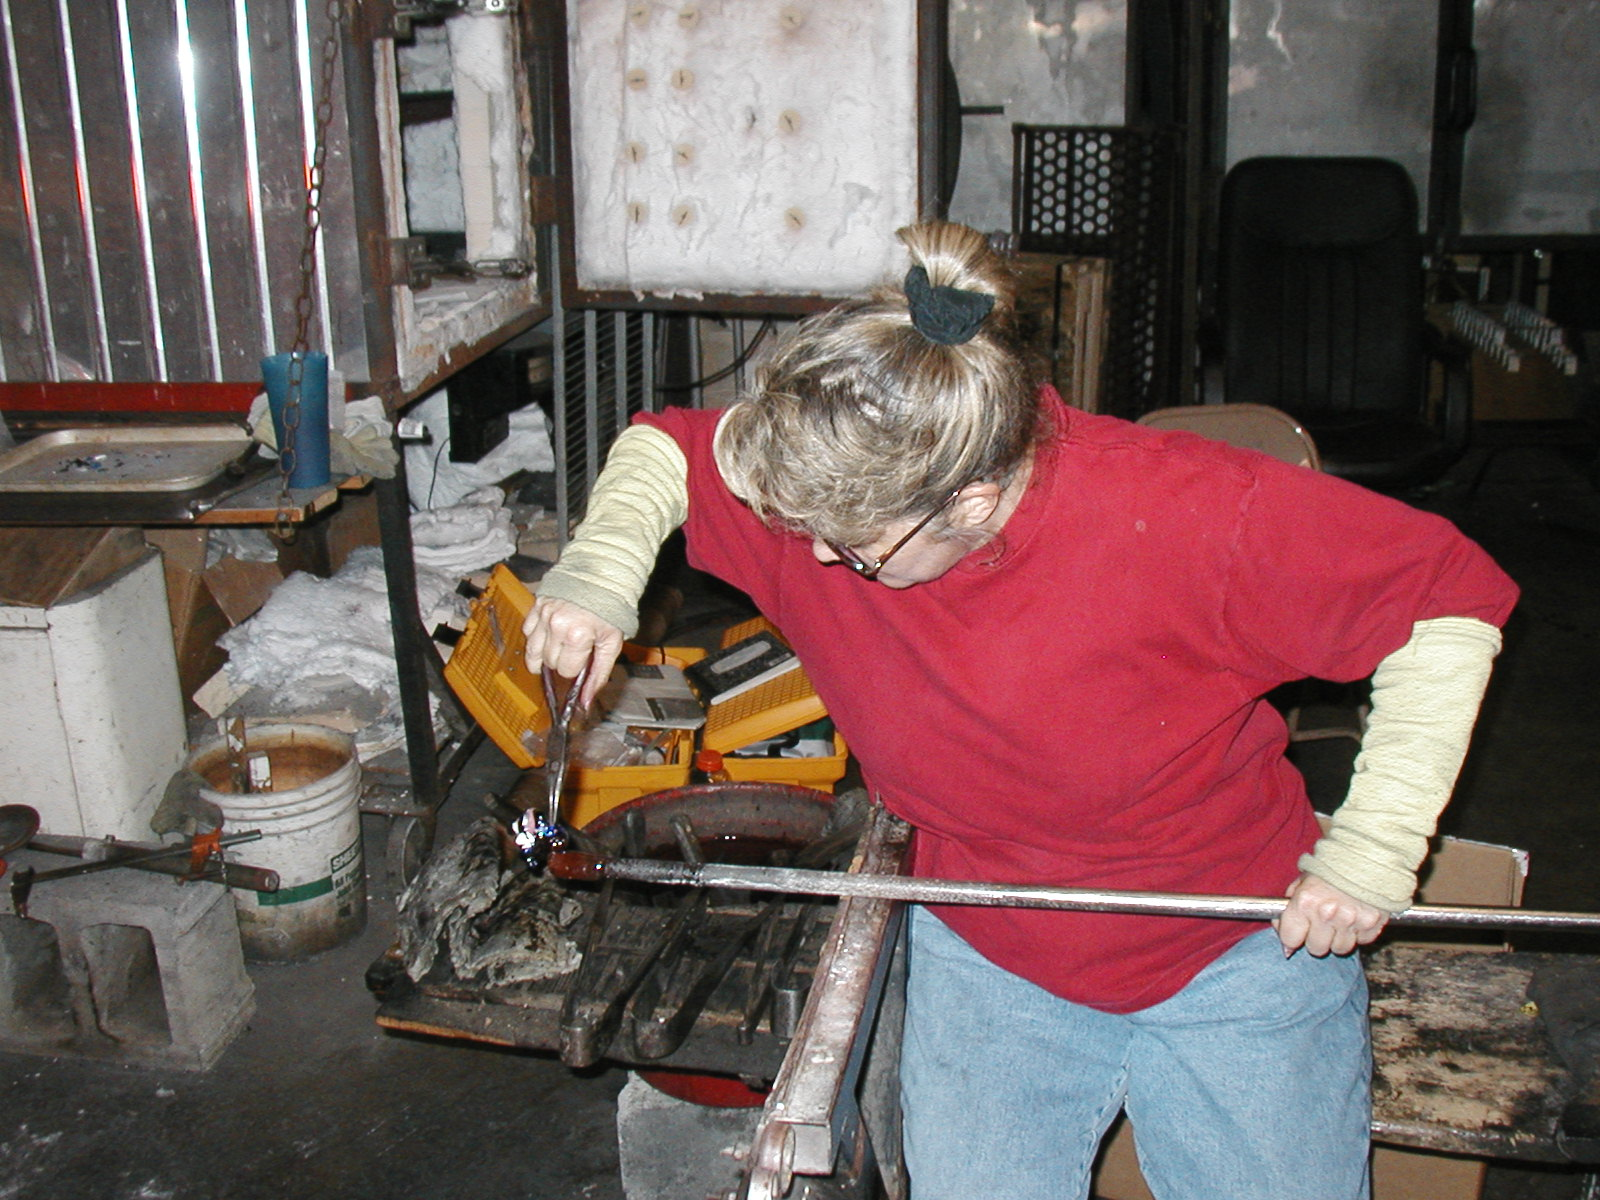 Glassblower.Info - Joel Bless Glasslight Glassblowing class January 18 2004 #168